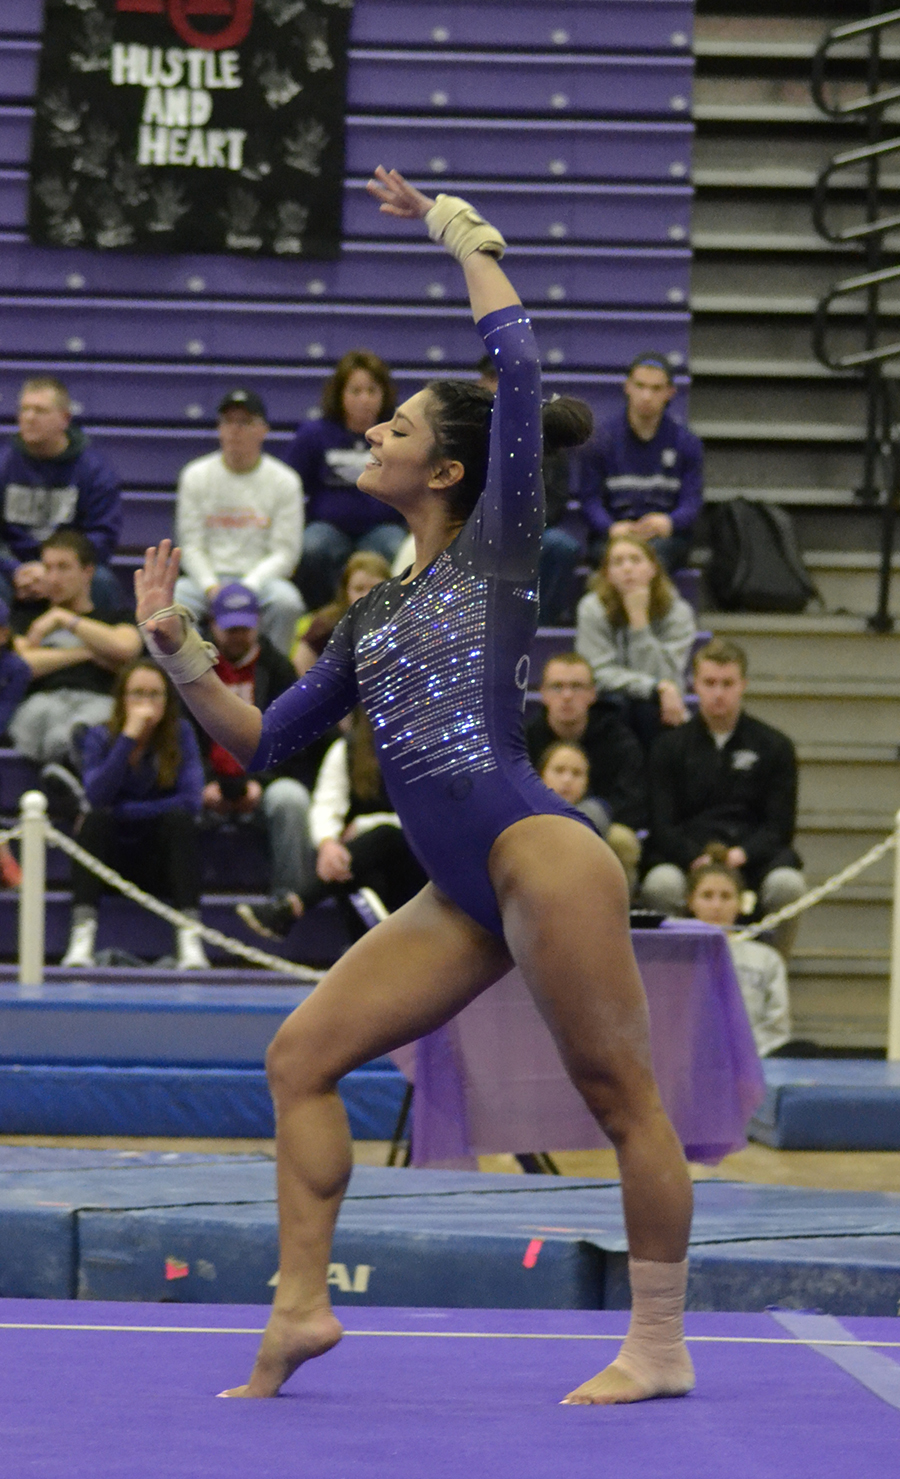 Sophomore all-around champion Lisa O'Donnell poses during her floor routine at a home meet earlier this year. Photo by Sierra High